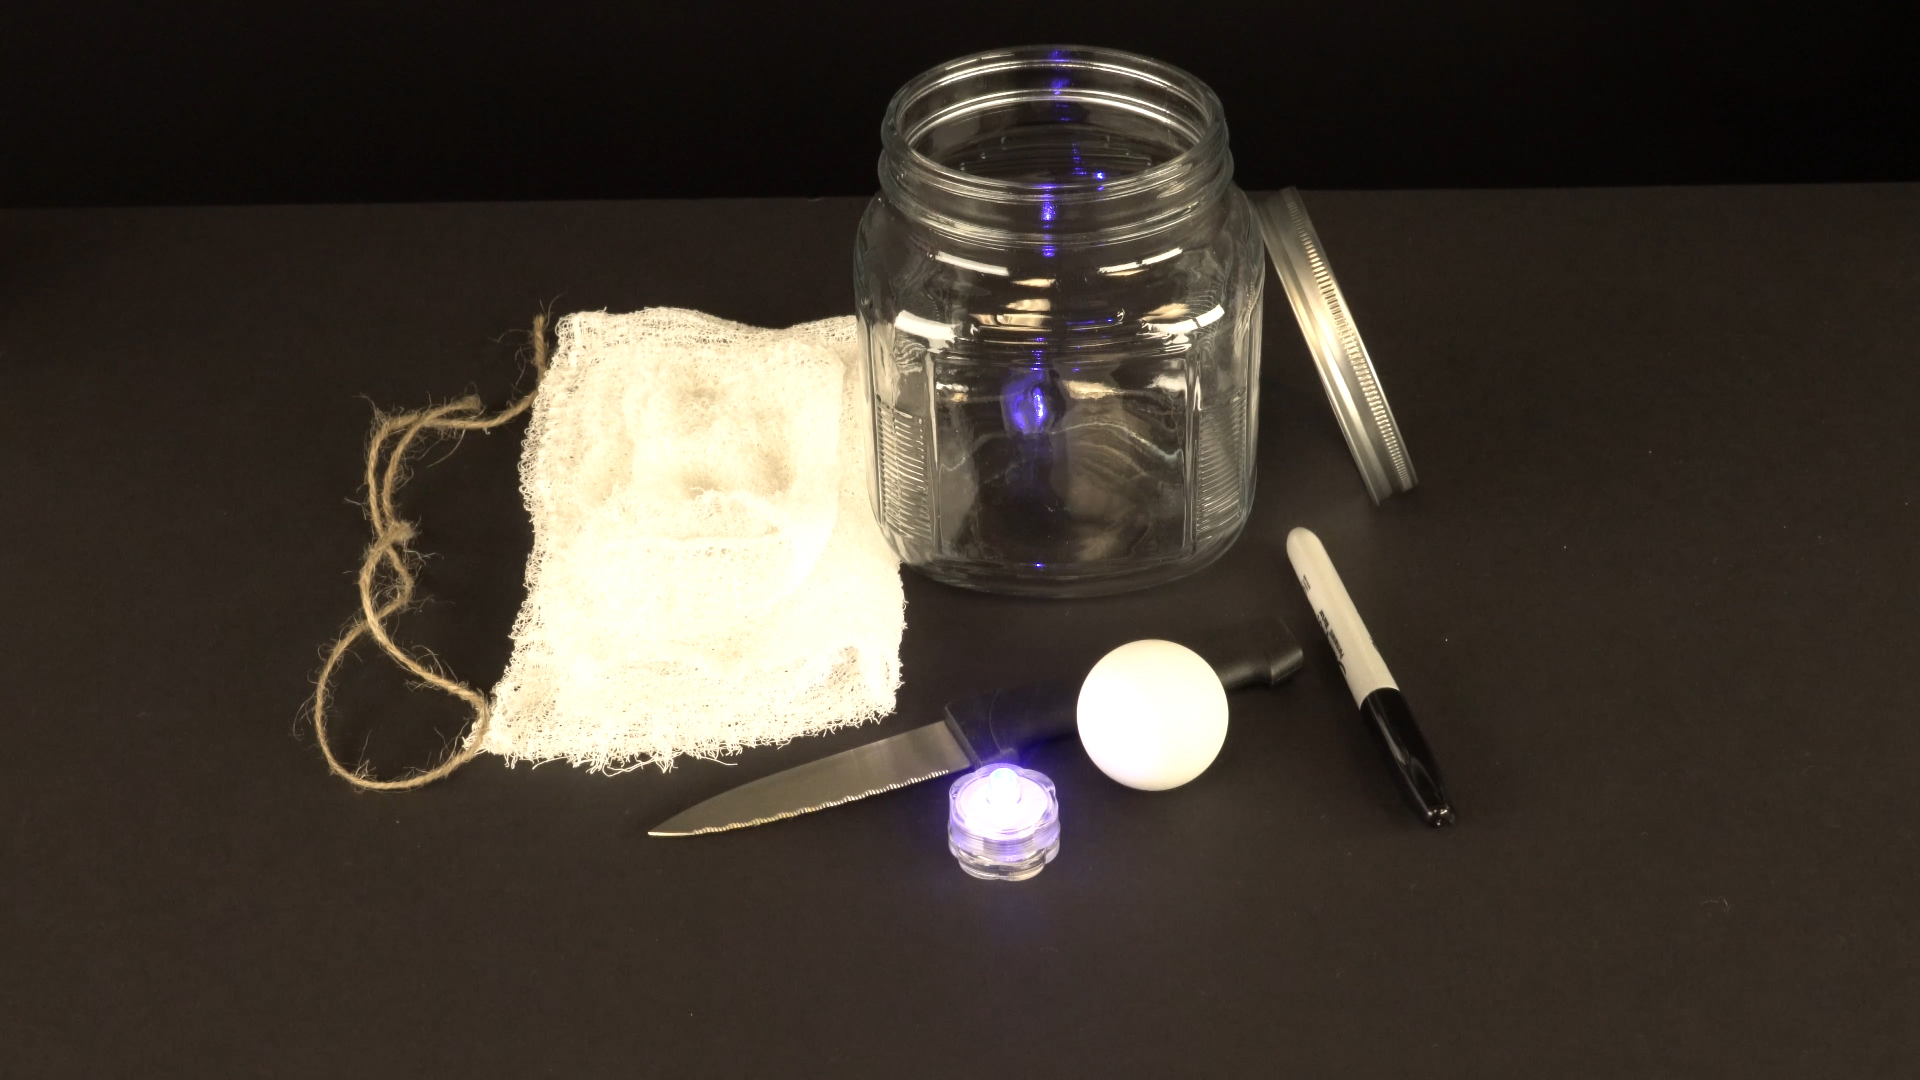 Halloween crafts with color-changing led tea lights - ghost materials